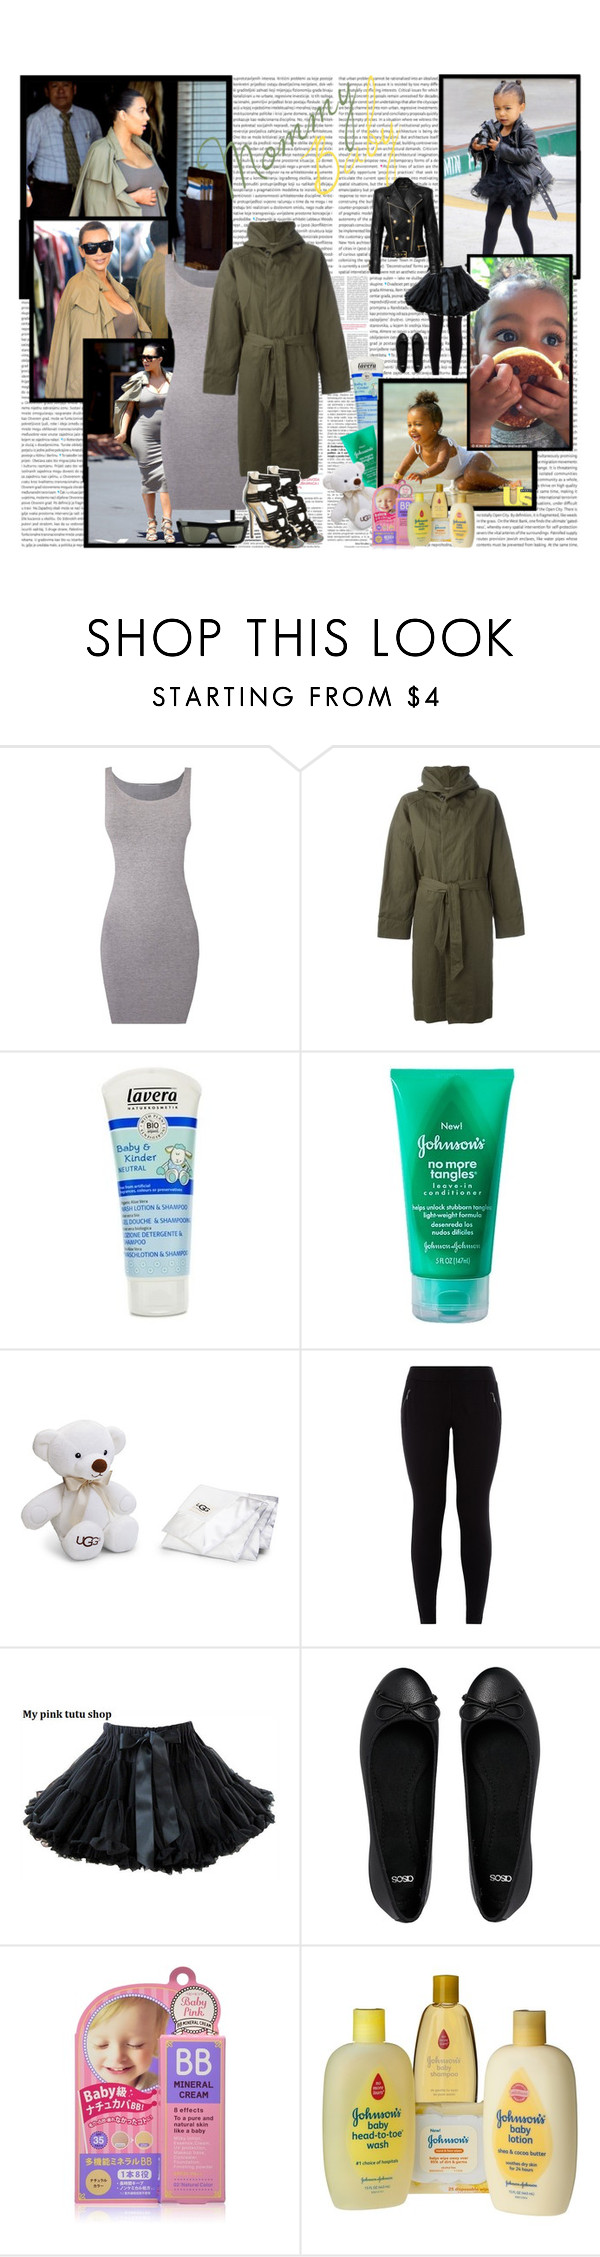 """MommyBaby - Tuesday5"" by fashionaddict-il ❤ liked on Polyvore featuring Oris, Étoile Isabel Marant, Jimmy Choo, Lavera, Johnson's Baby, UGG Australia, Balmain and ASOS"